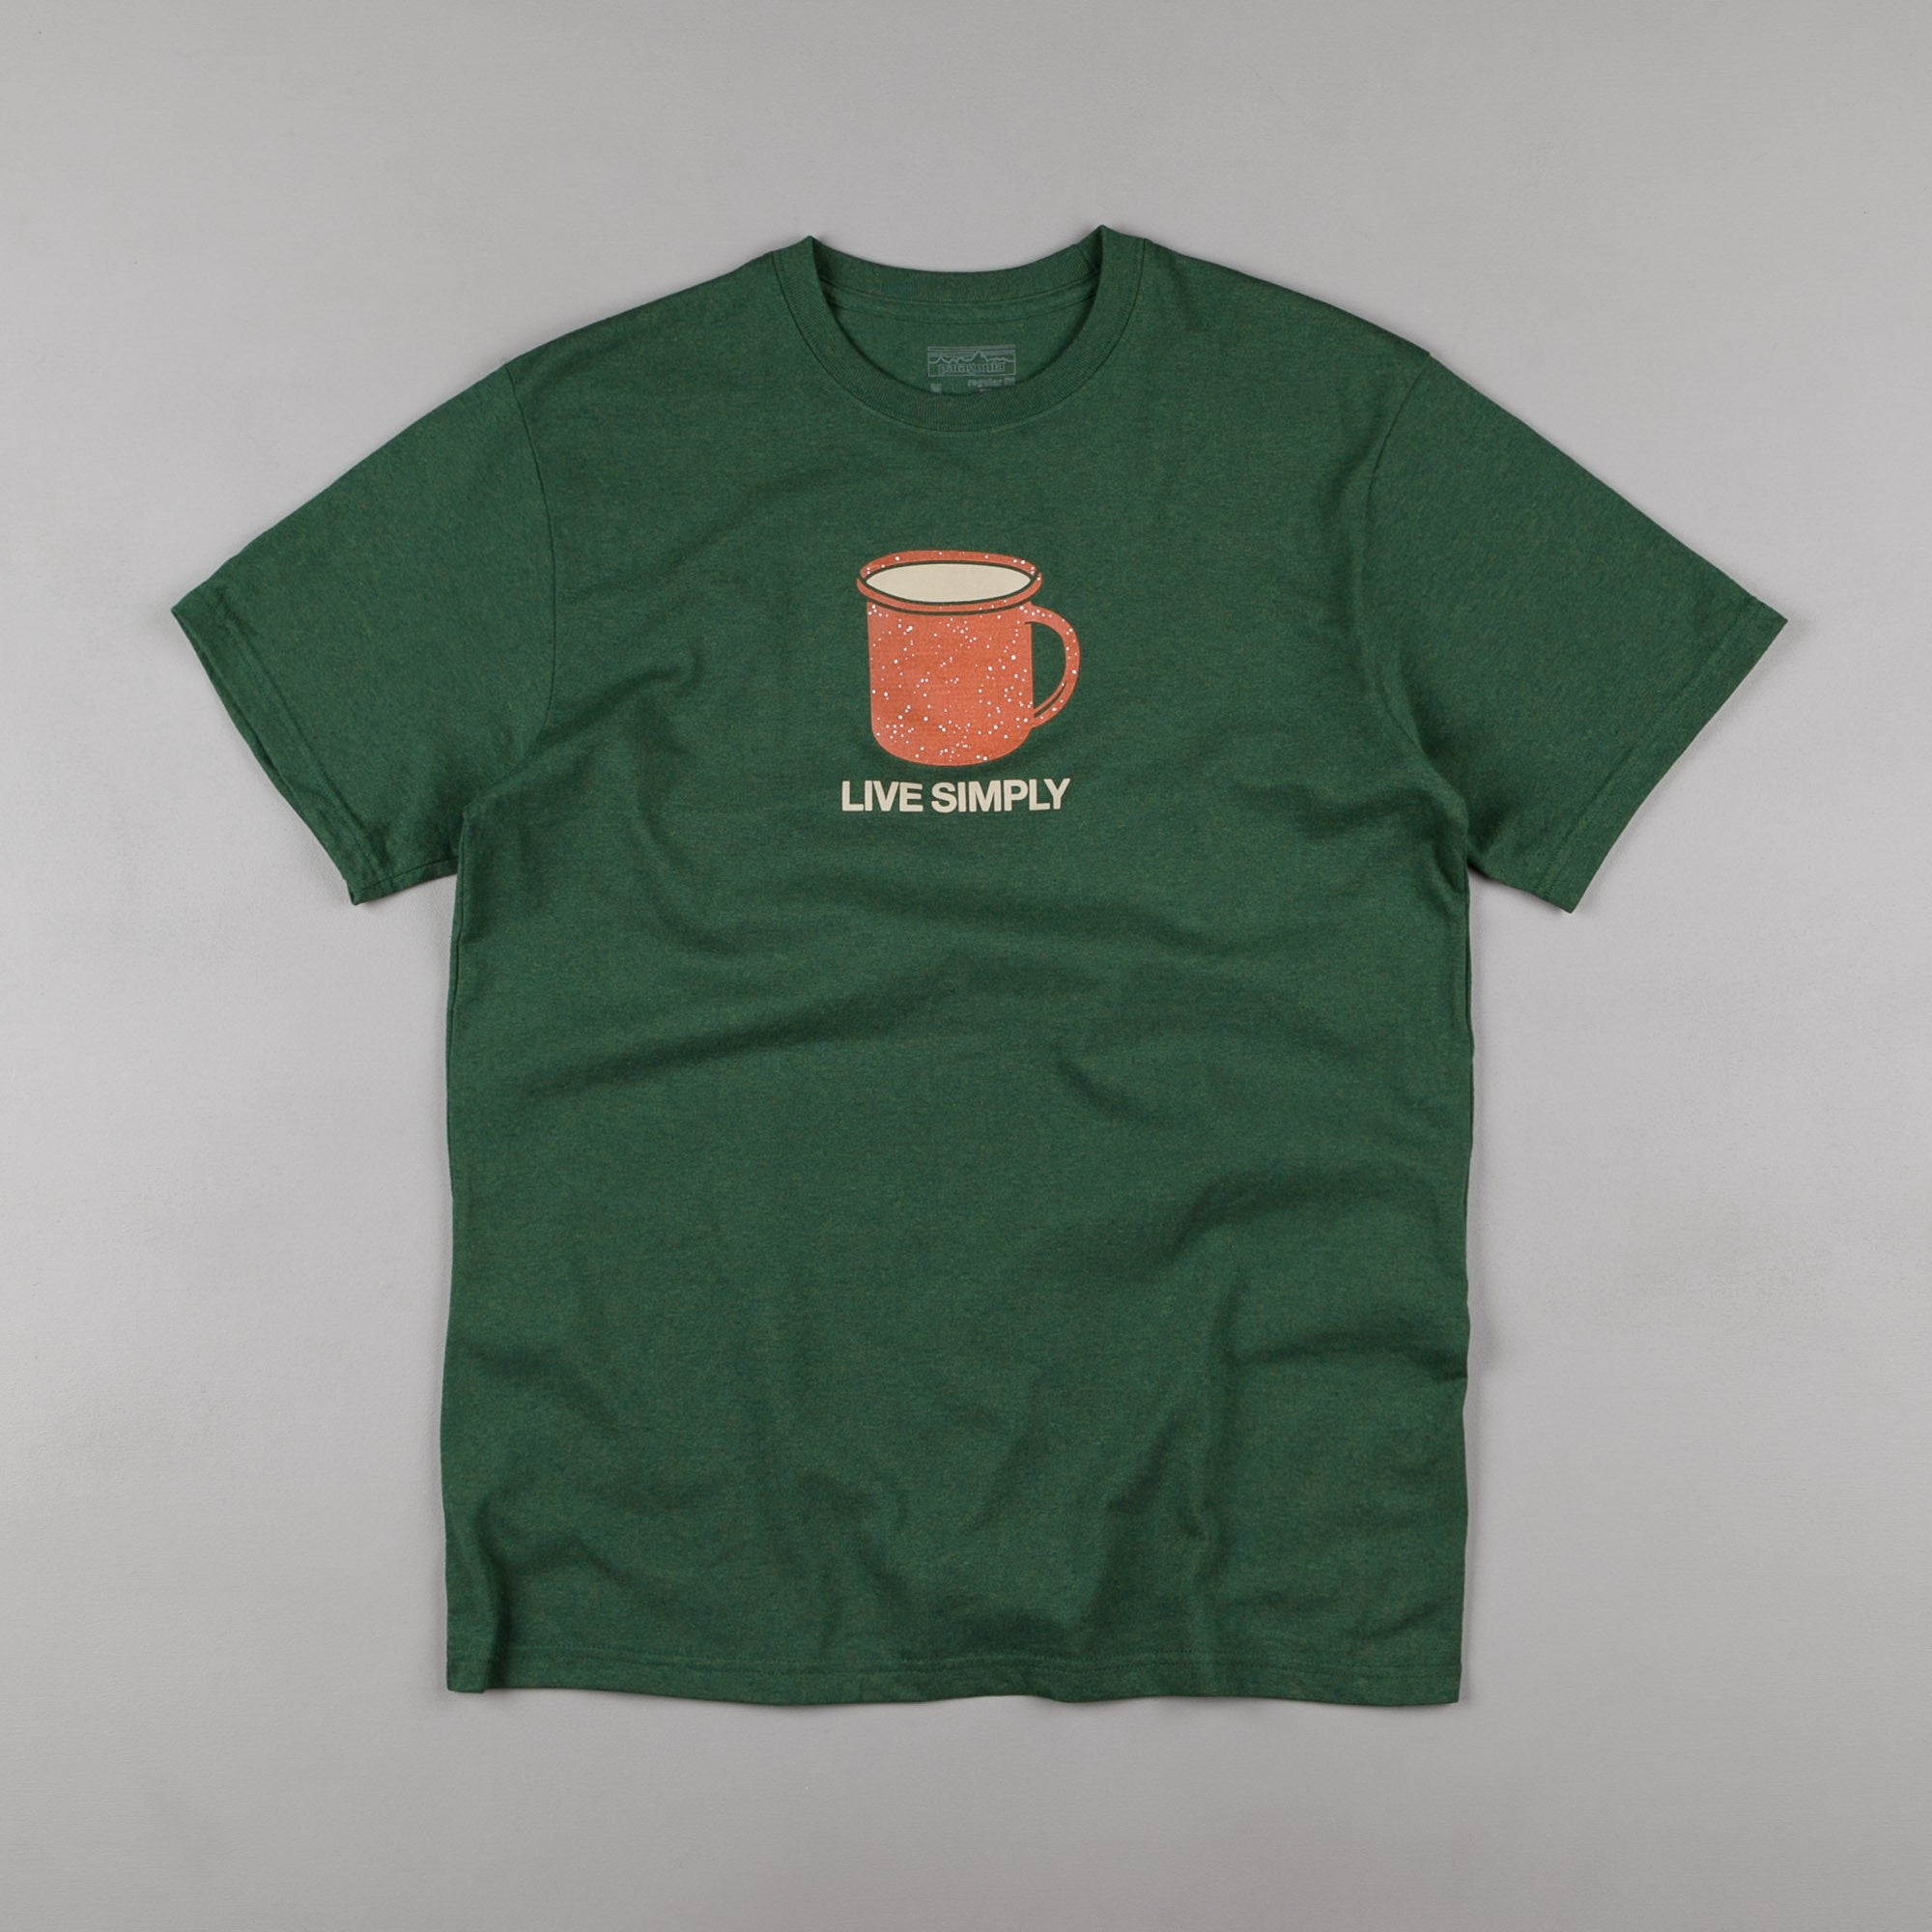 Patagonia Live Simply Mornings T-Shirt - Riparian Forest